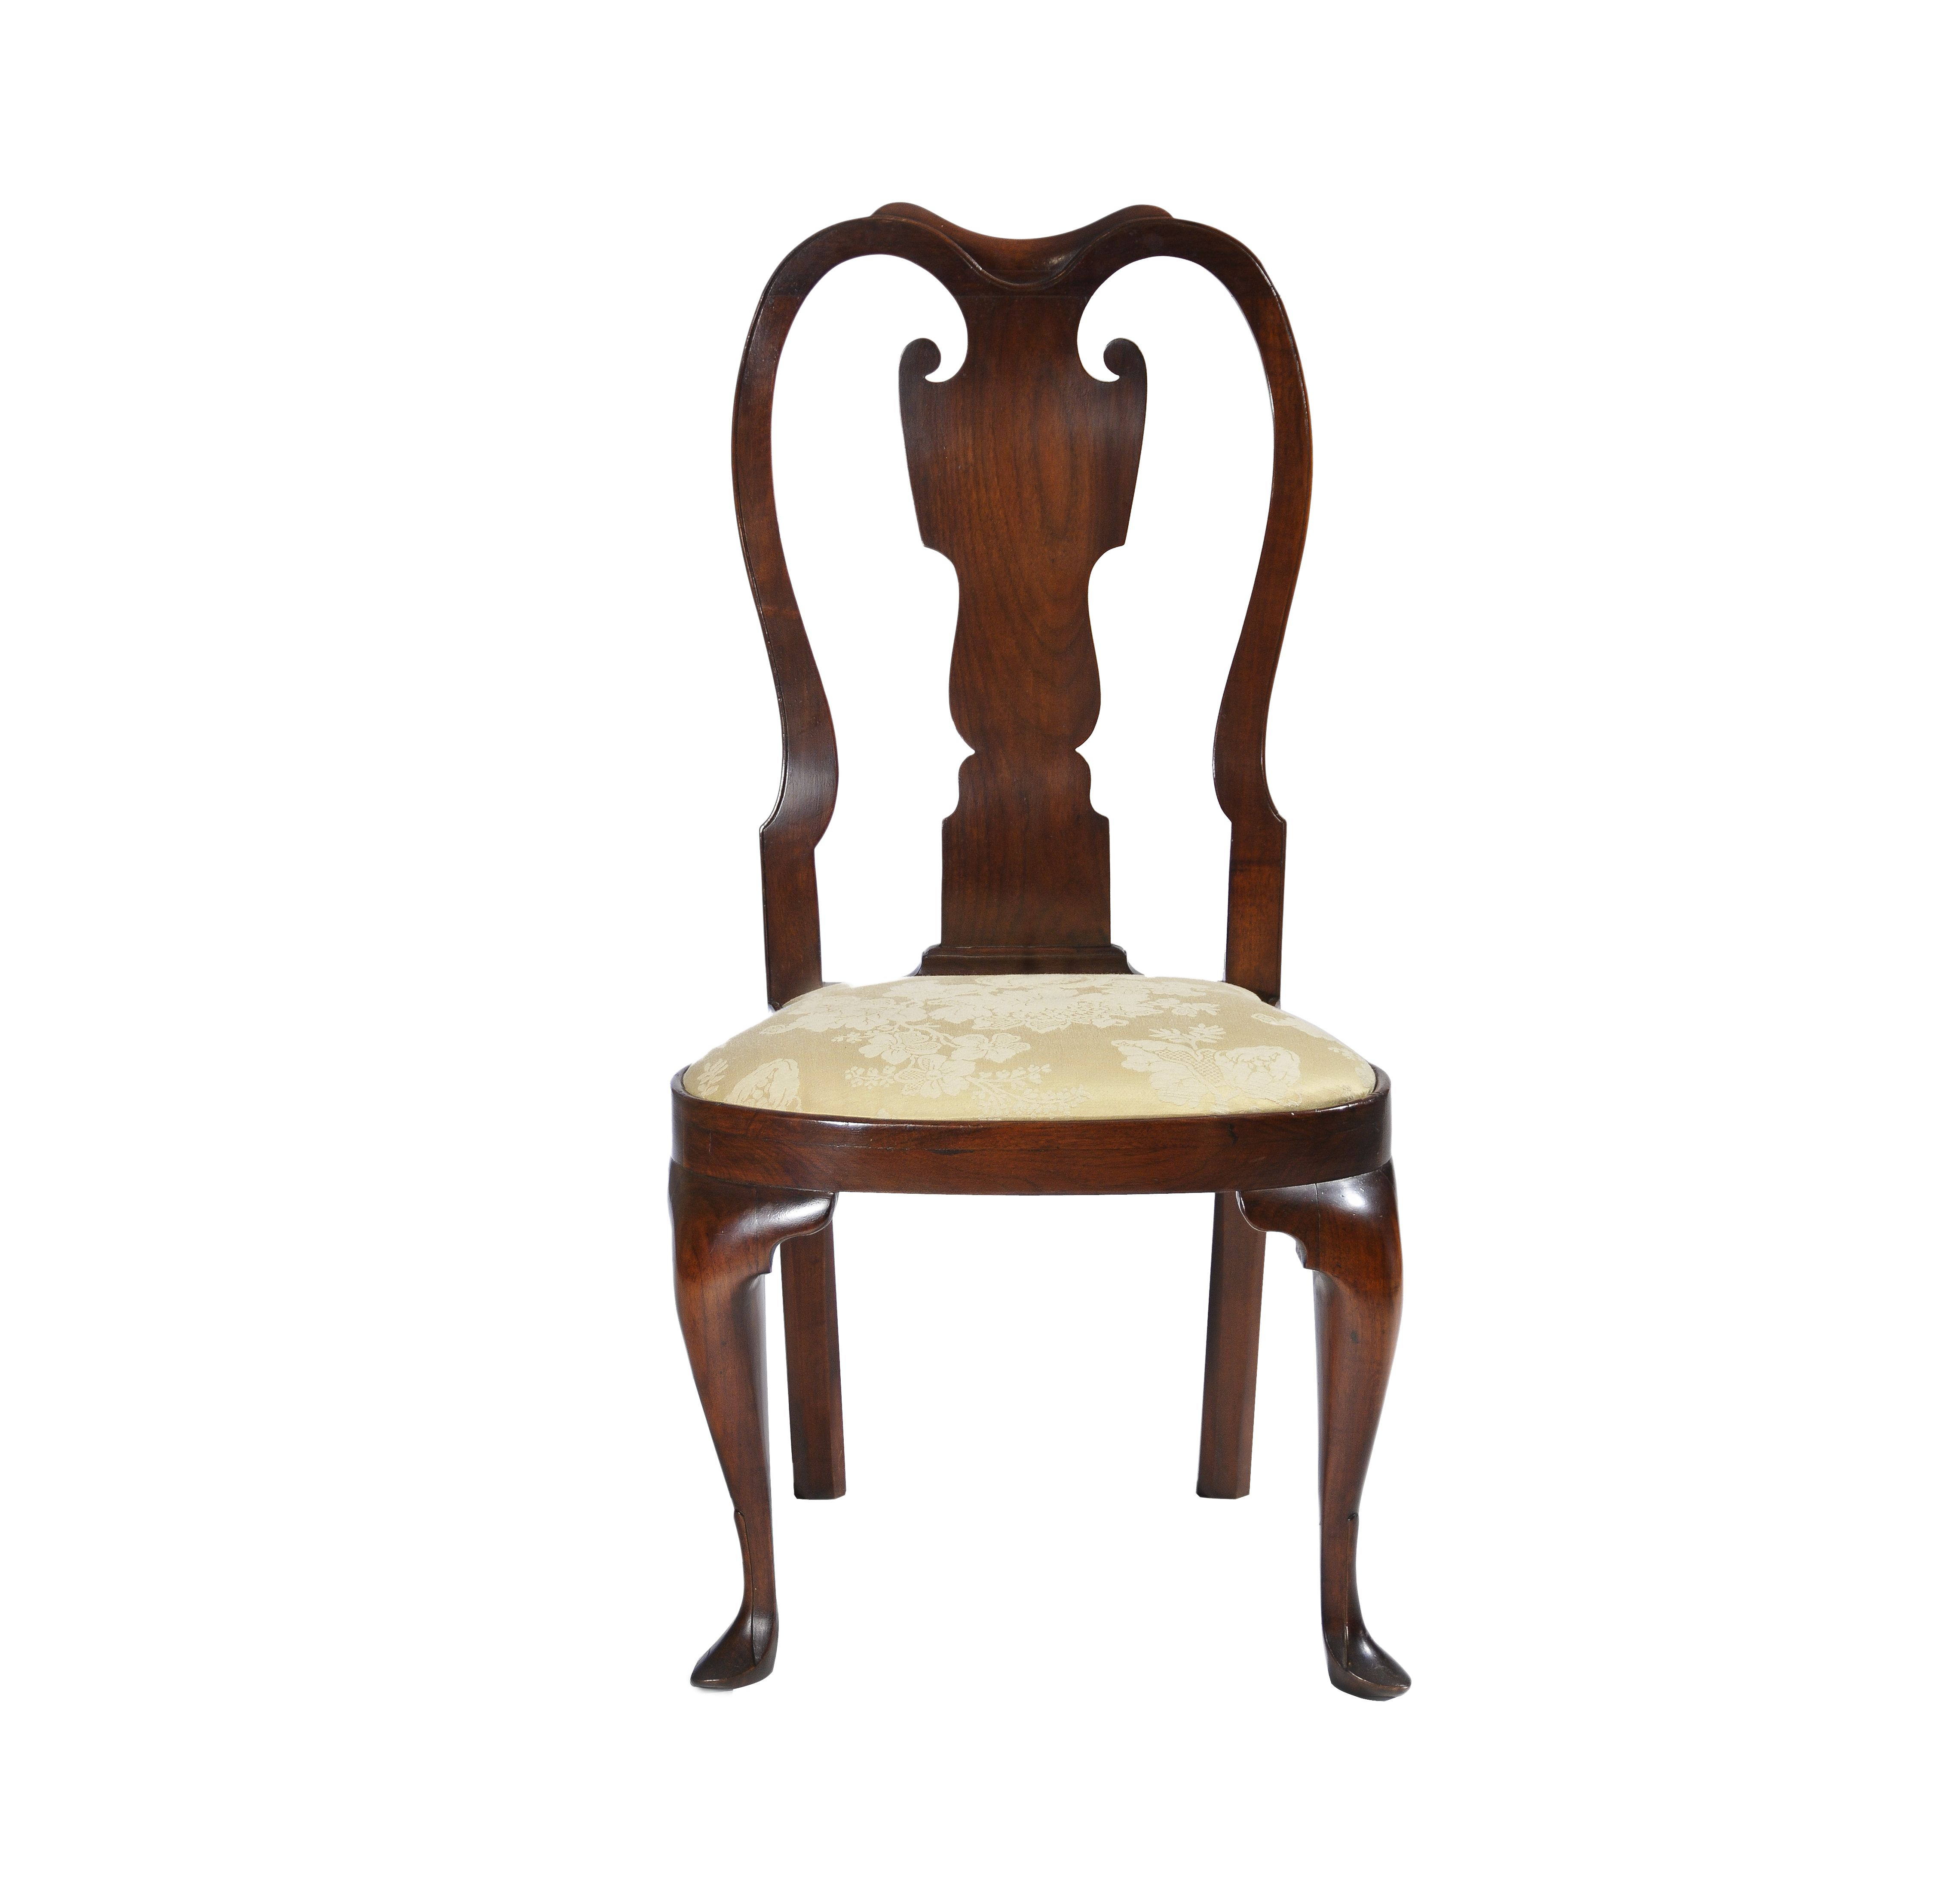 18th queen anne splat back furniture dining chairs